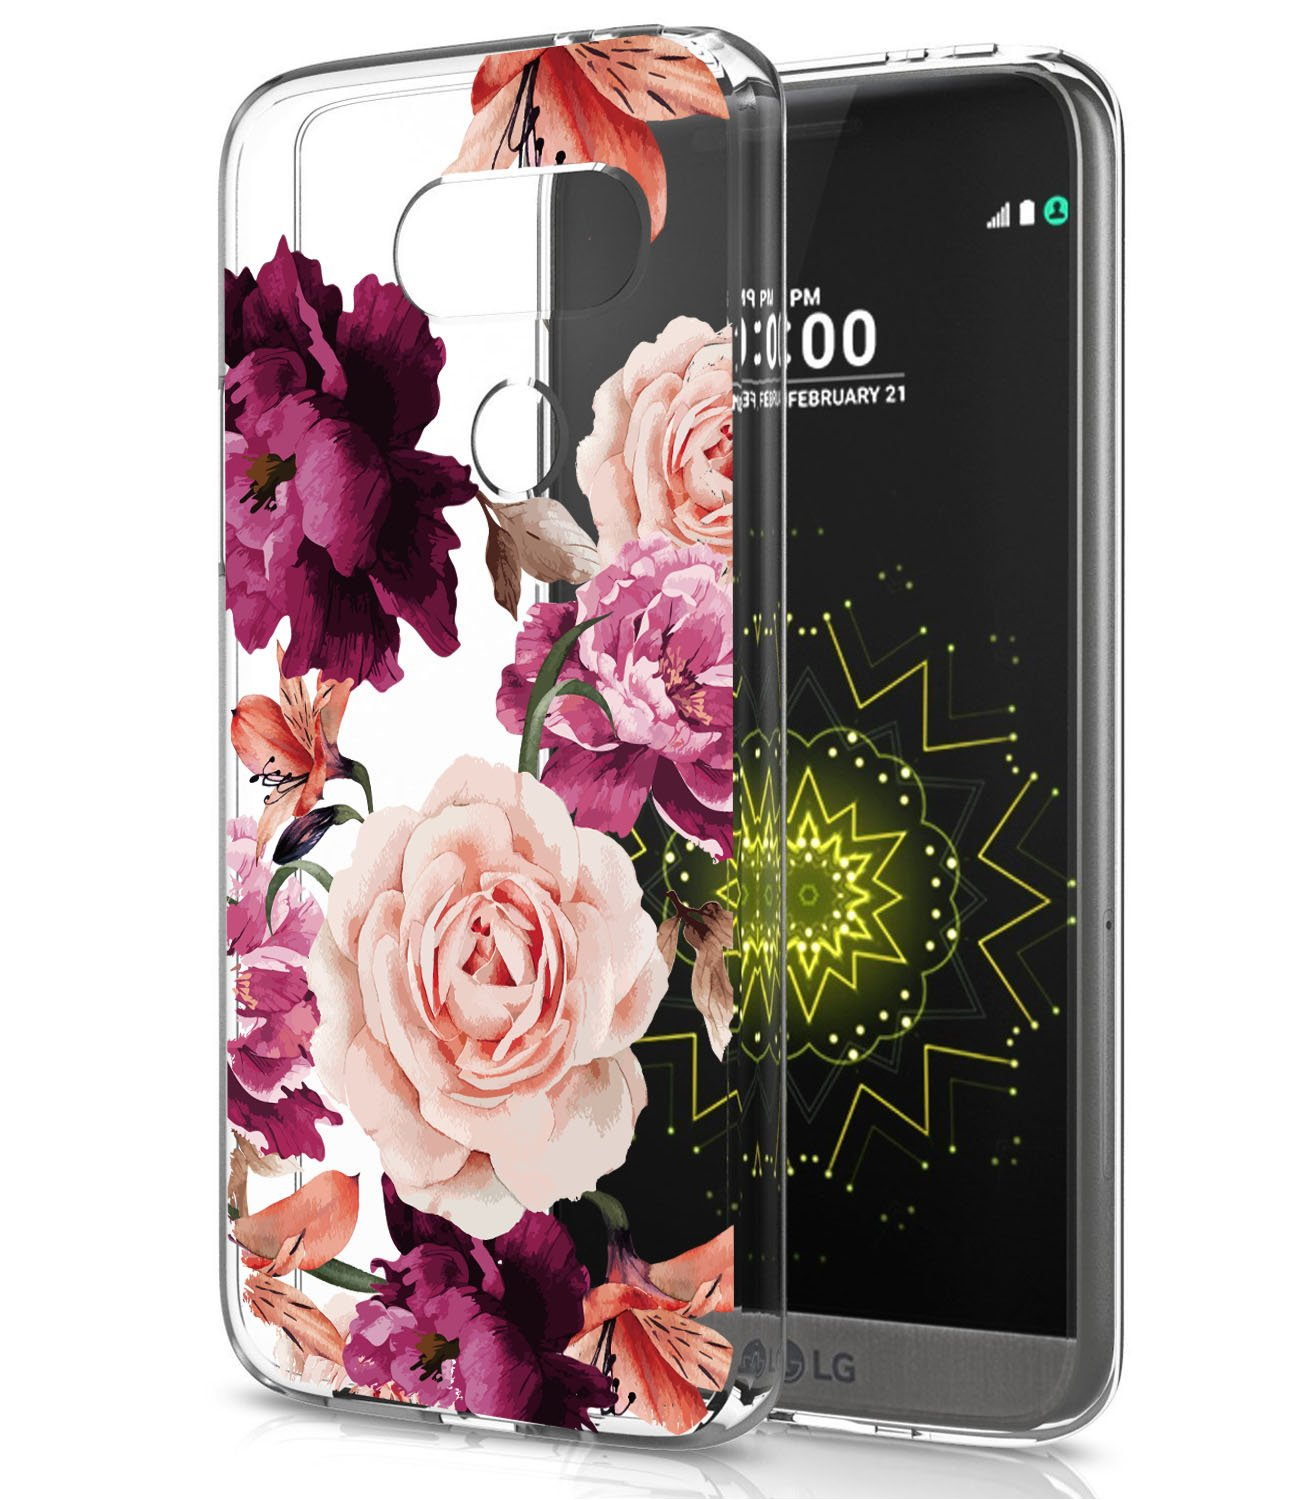 LG G5 Case, LG G5 Case with Flowers, BAISRKE Slim Shockproof Clear Floral Pattern Soft Flexible TPU Back Cove for LG G5 VS987/H820/LS992/H830/US992 [Purple Pink]